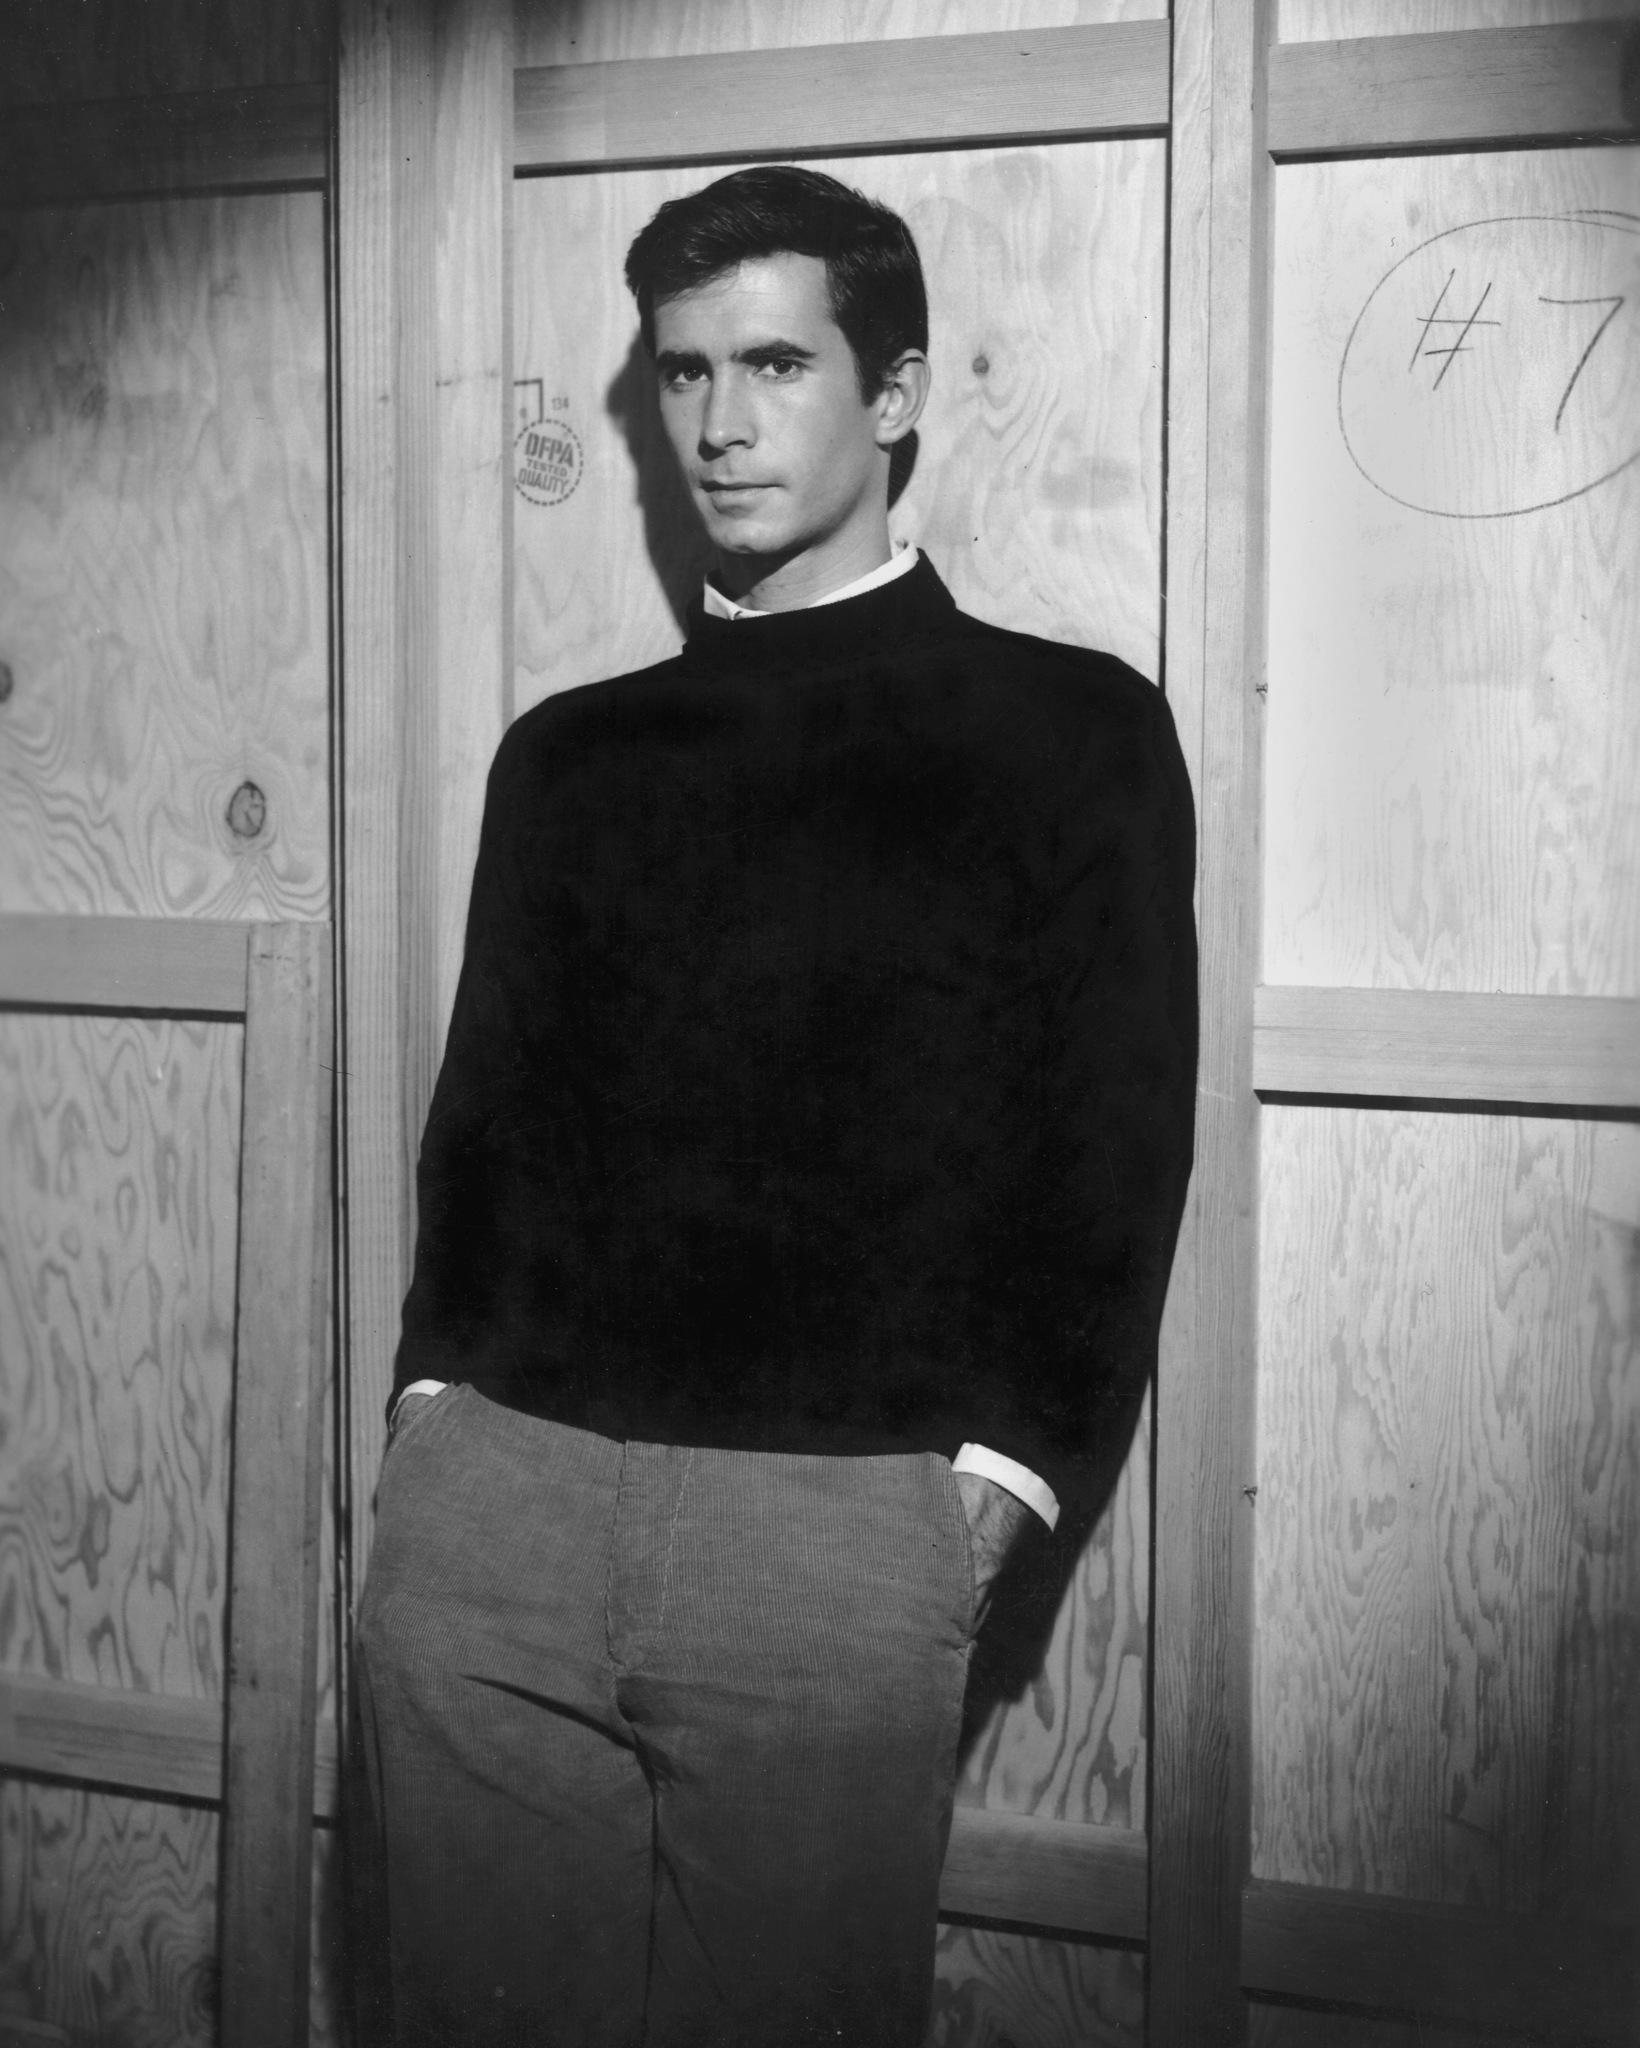 Anthony Perkins - Found a GraveFound a Grave